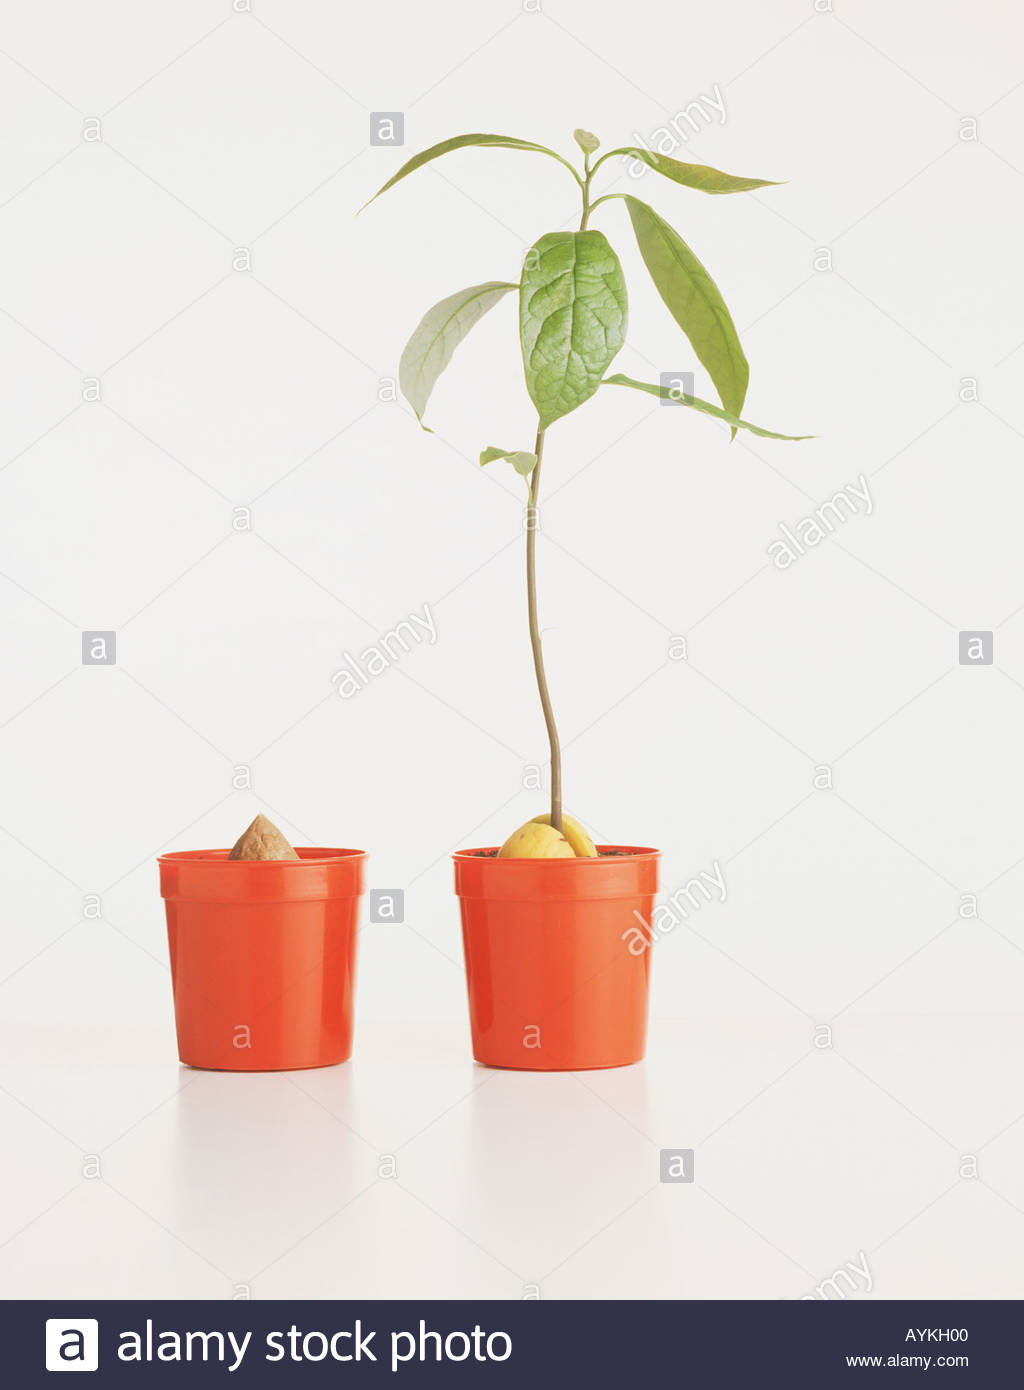 A young sapling in a pot alongside another pot with a seed and nothing growing from it - Stock Image